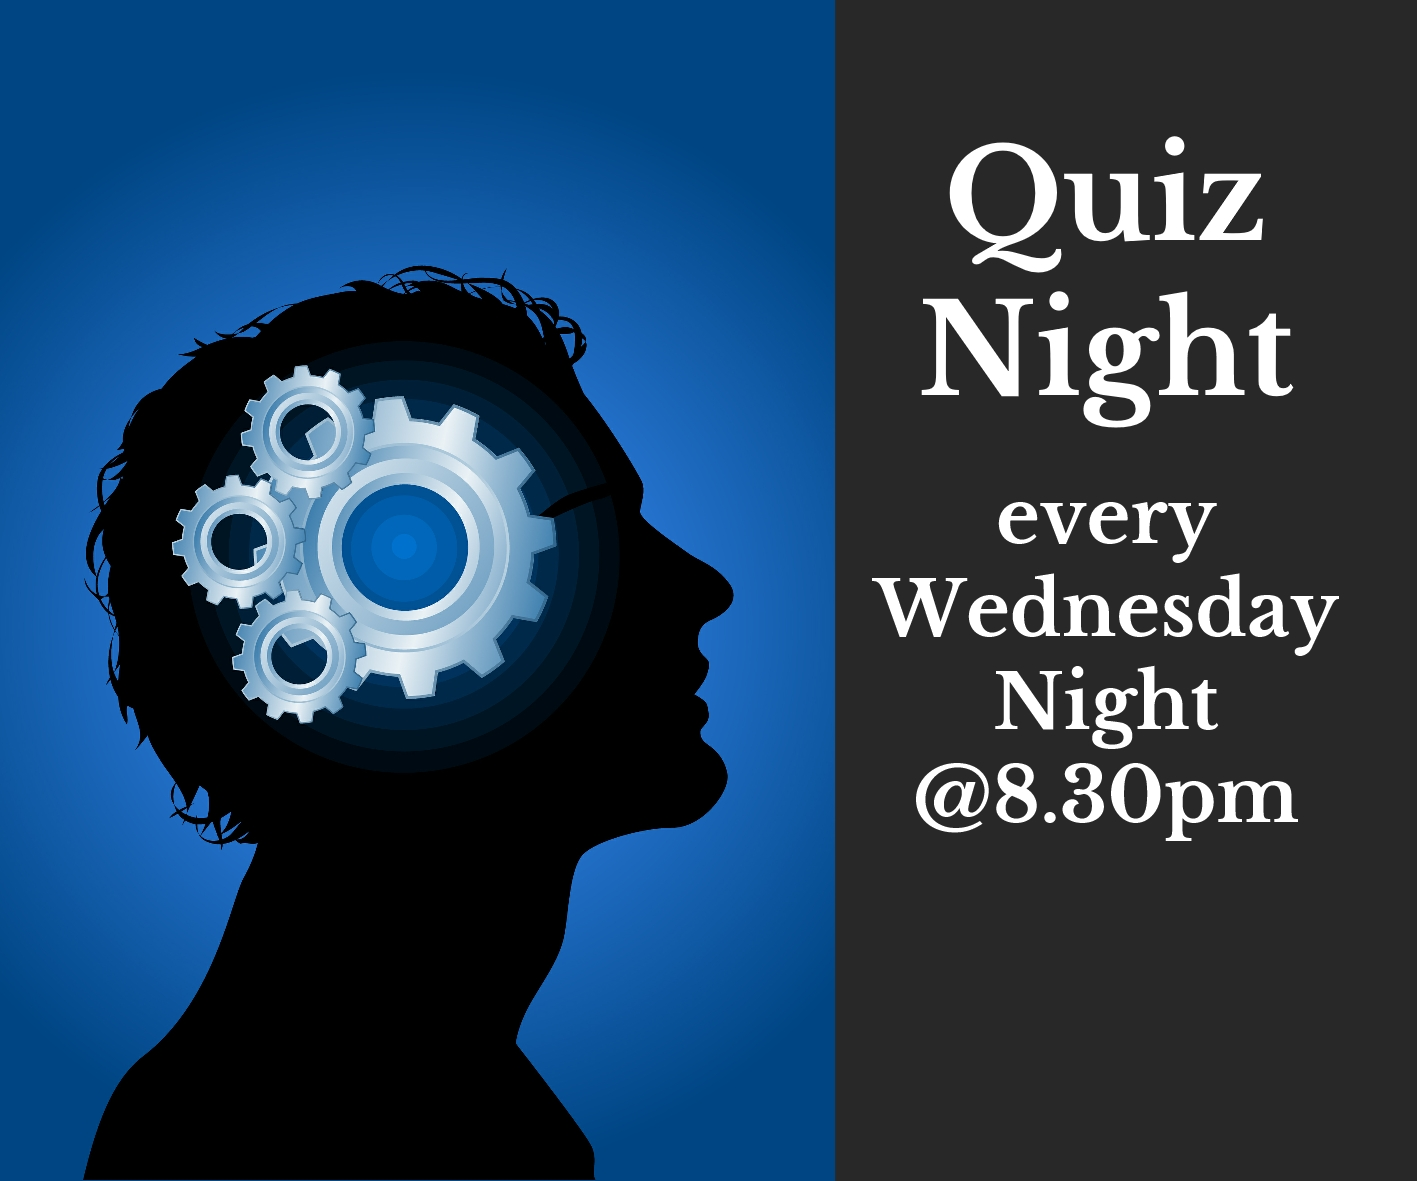 quiz night every wednesday night at 8:30pm